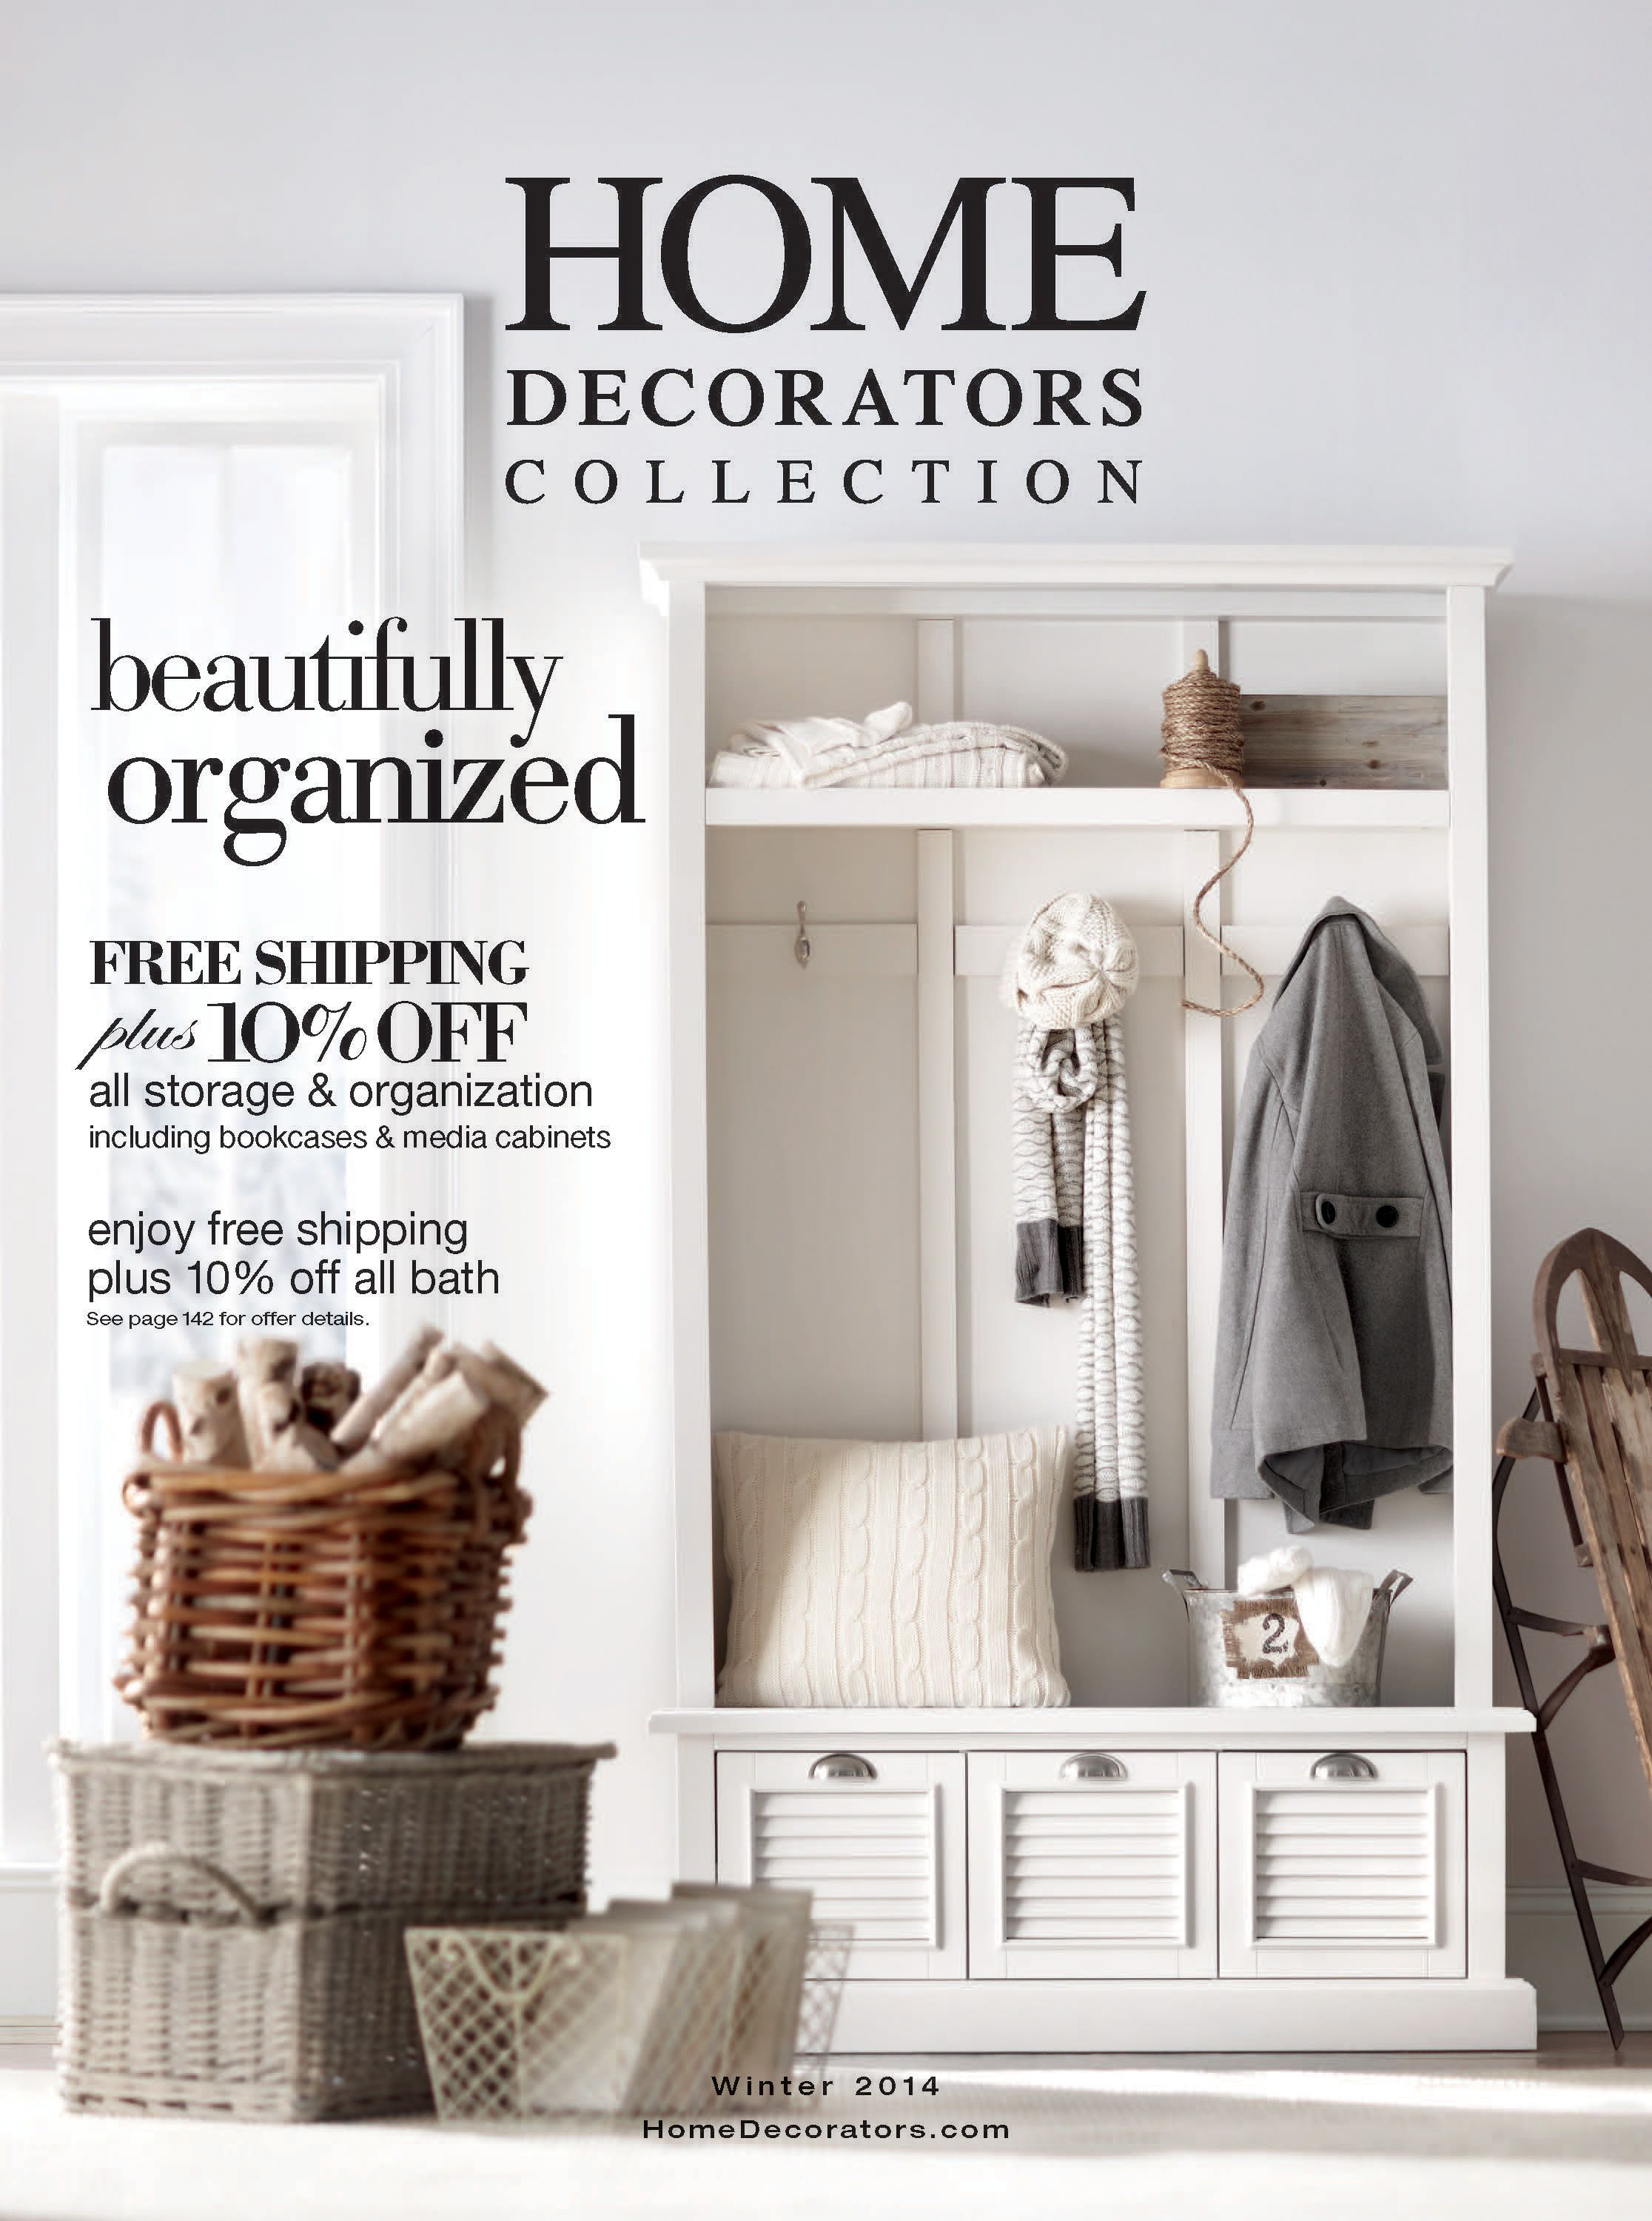 Home Decorators Collection Catalog    Order catalog here     Home Decorators Collection Catalog    Order catalog here  homedecorators  com catalog request php